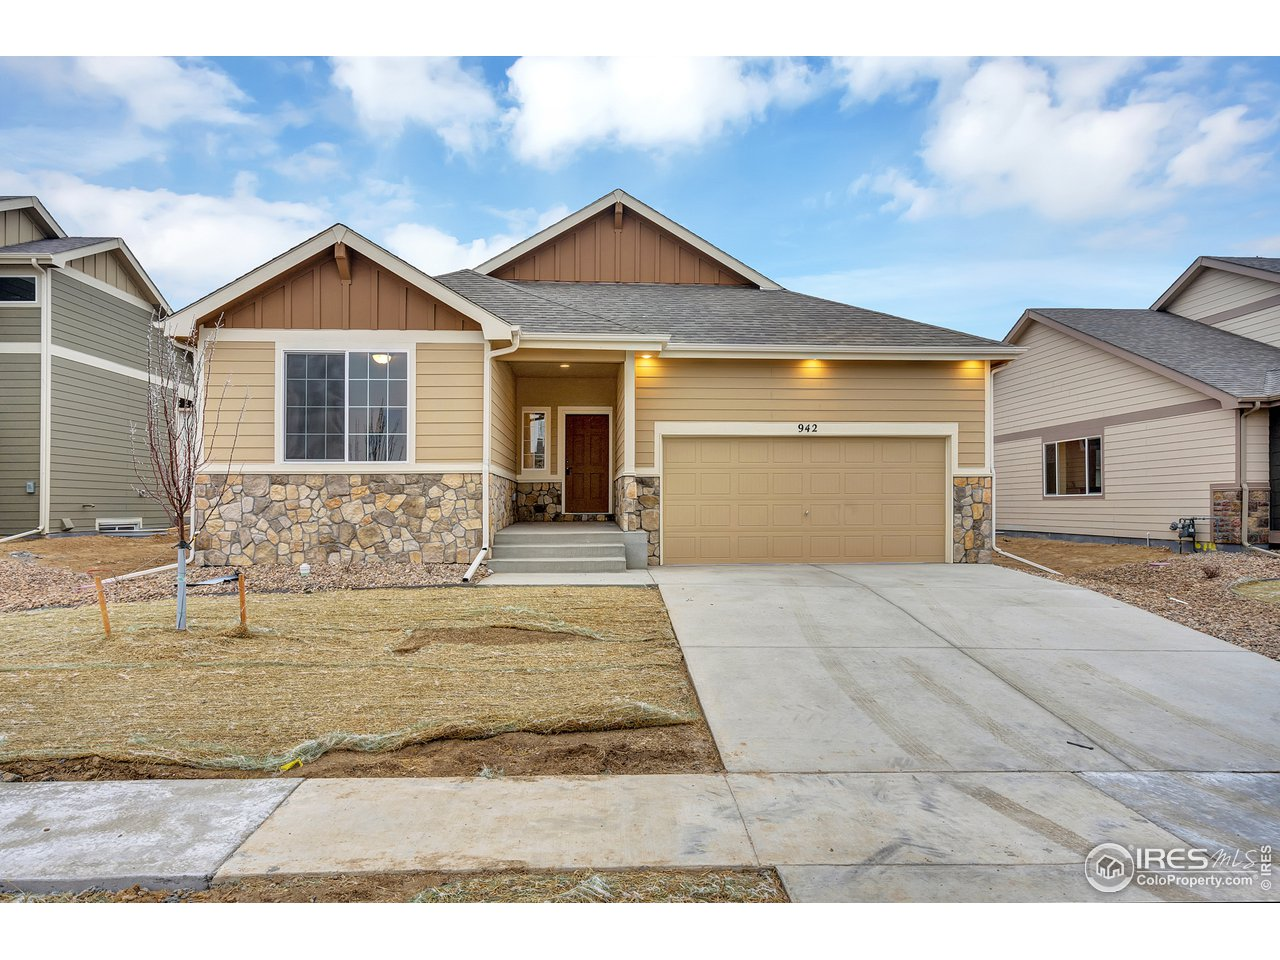 8605 13th St, Greeley CO 80634